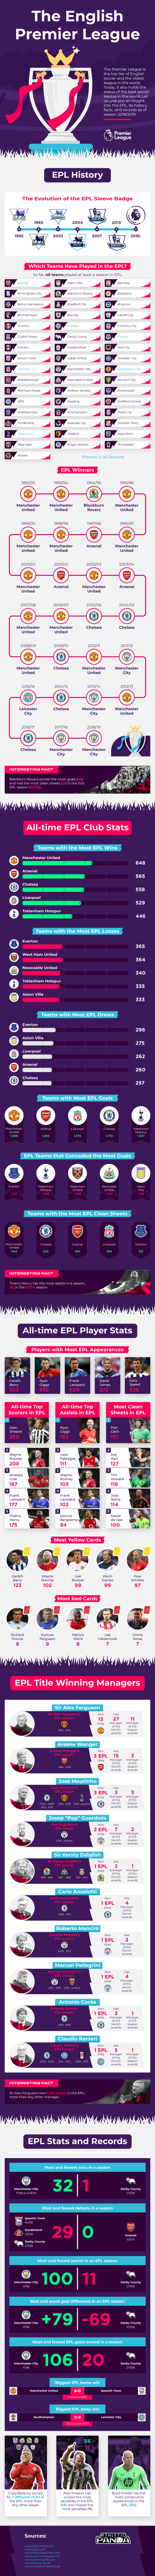 EPL History Infographic